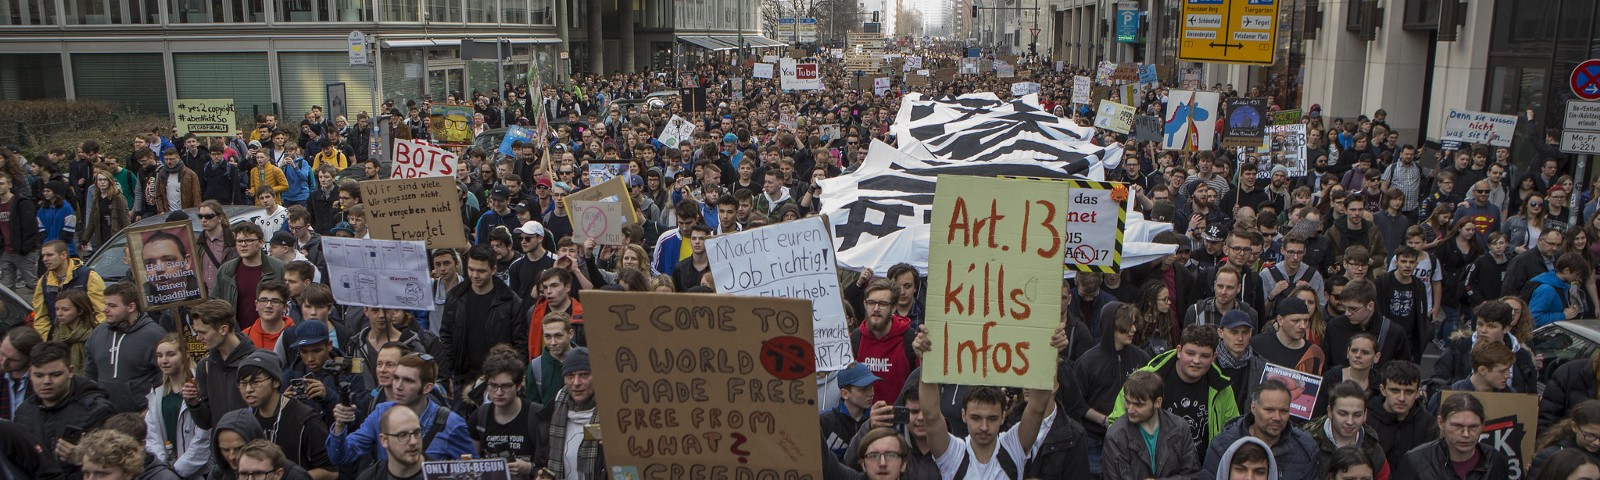 In Berlin, tens of thousands of people took to the streets against the planned reform of the EU in copyright law.